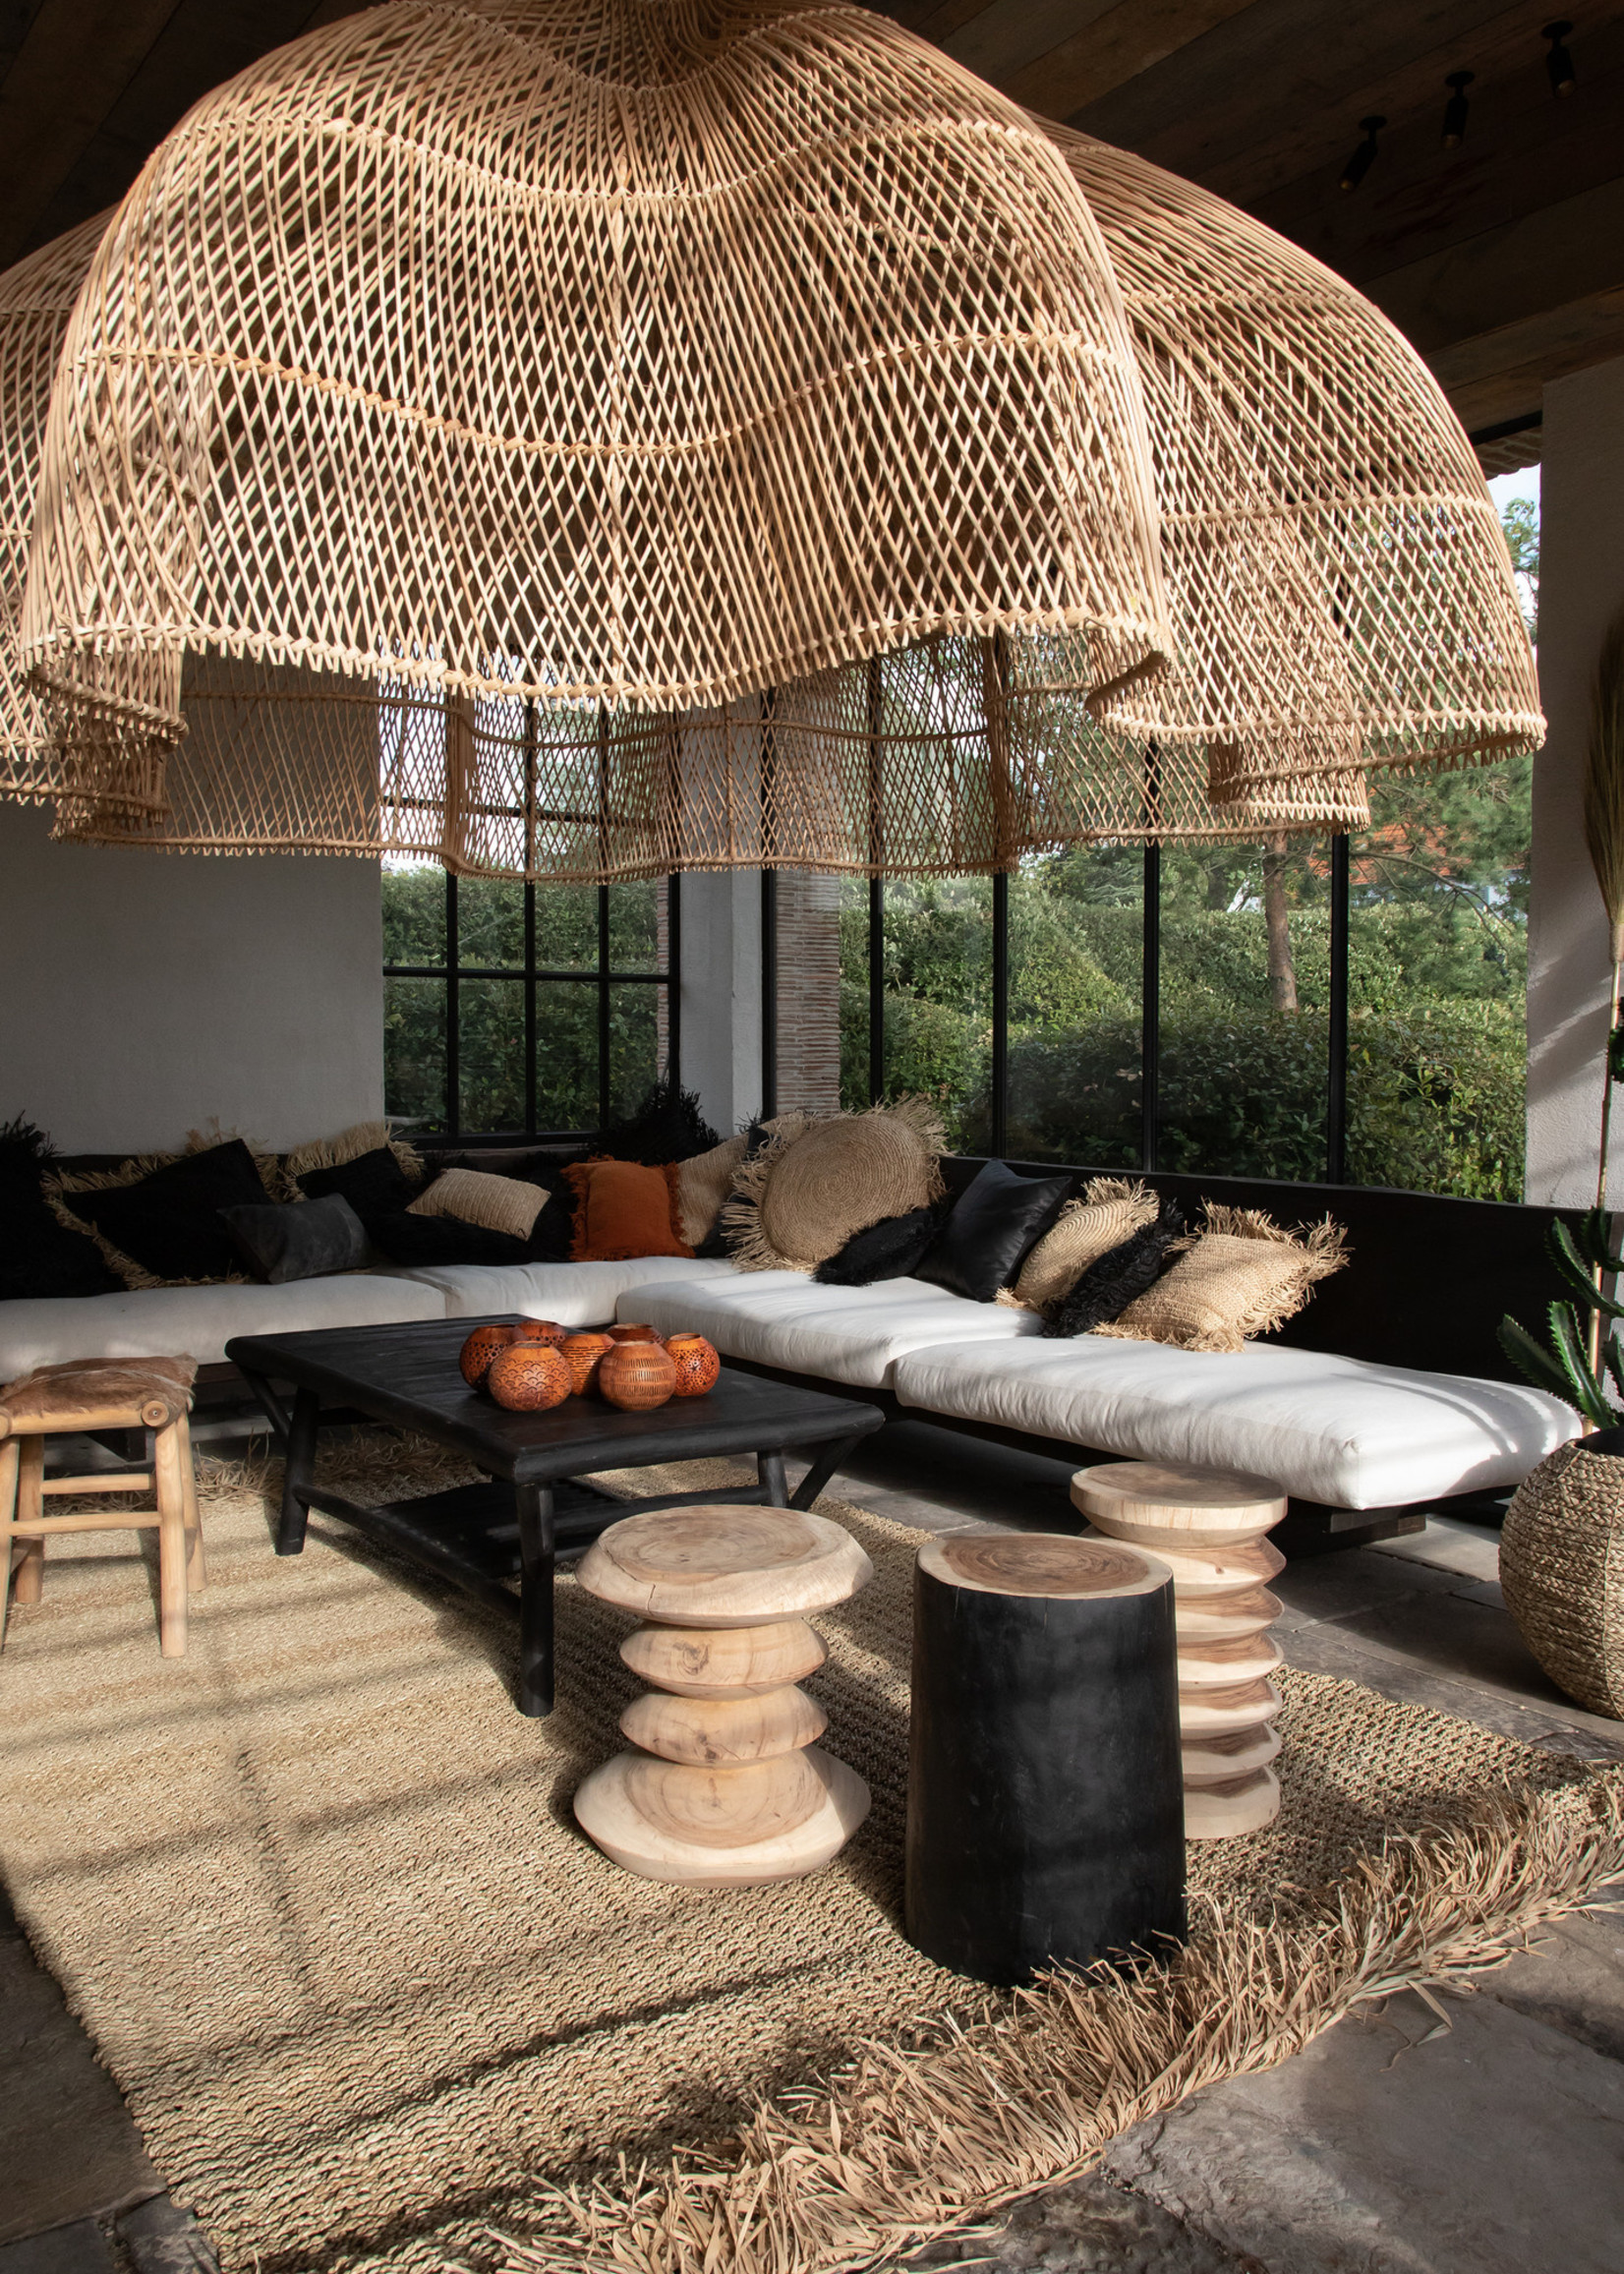 The Rattan Whipped Pendant - Natural - XXL